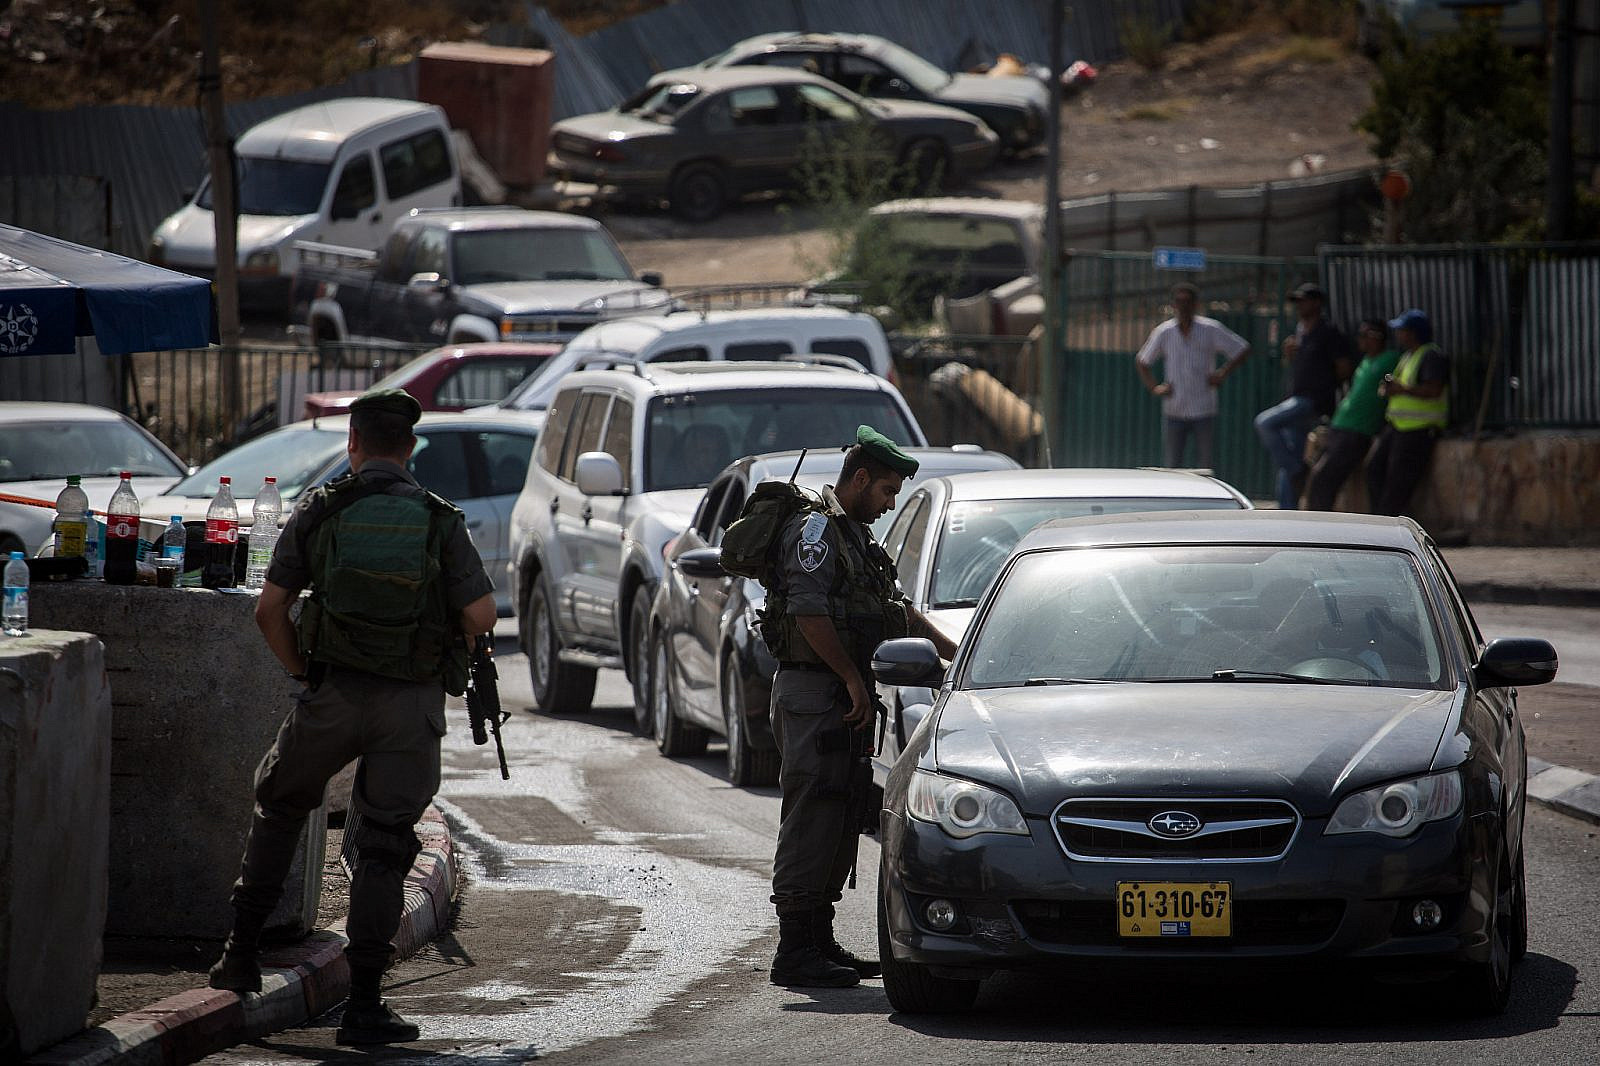 Israeli Border Police set up a checkpoint at the exit from the East Jerusalem neighborhood of Sur Baher, checking every Palestinian wanting to pass, October 16, 2015. (Hadas Parush/Flash90)